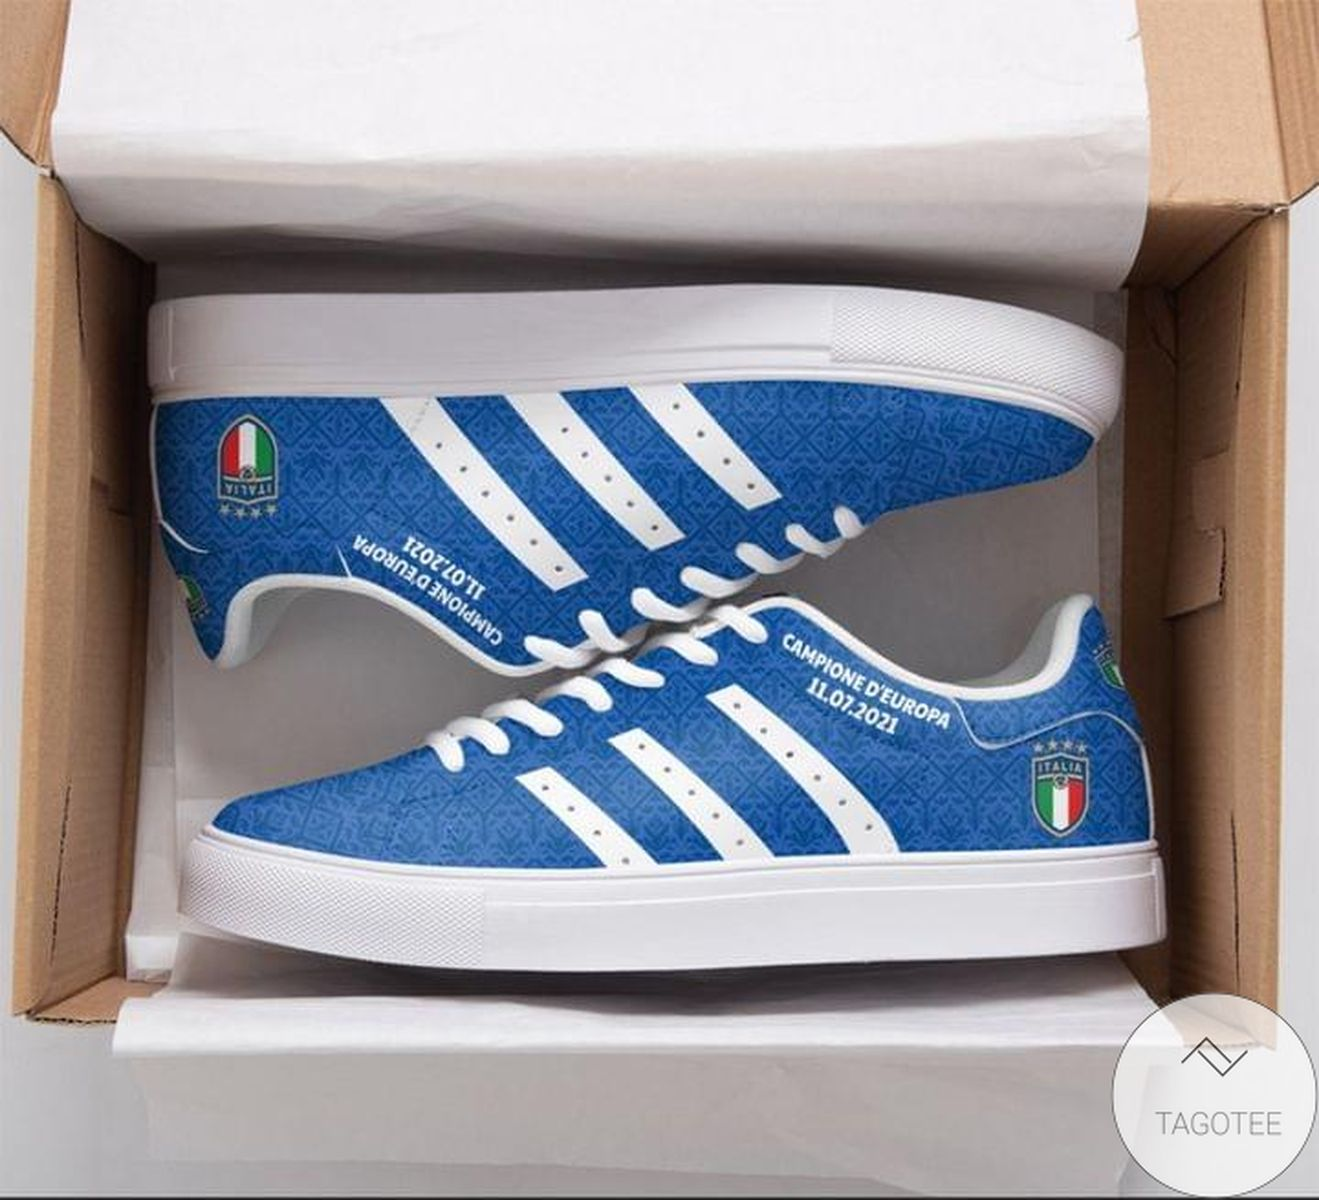 Campione D'europa Blue Stan Smith Shoes